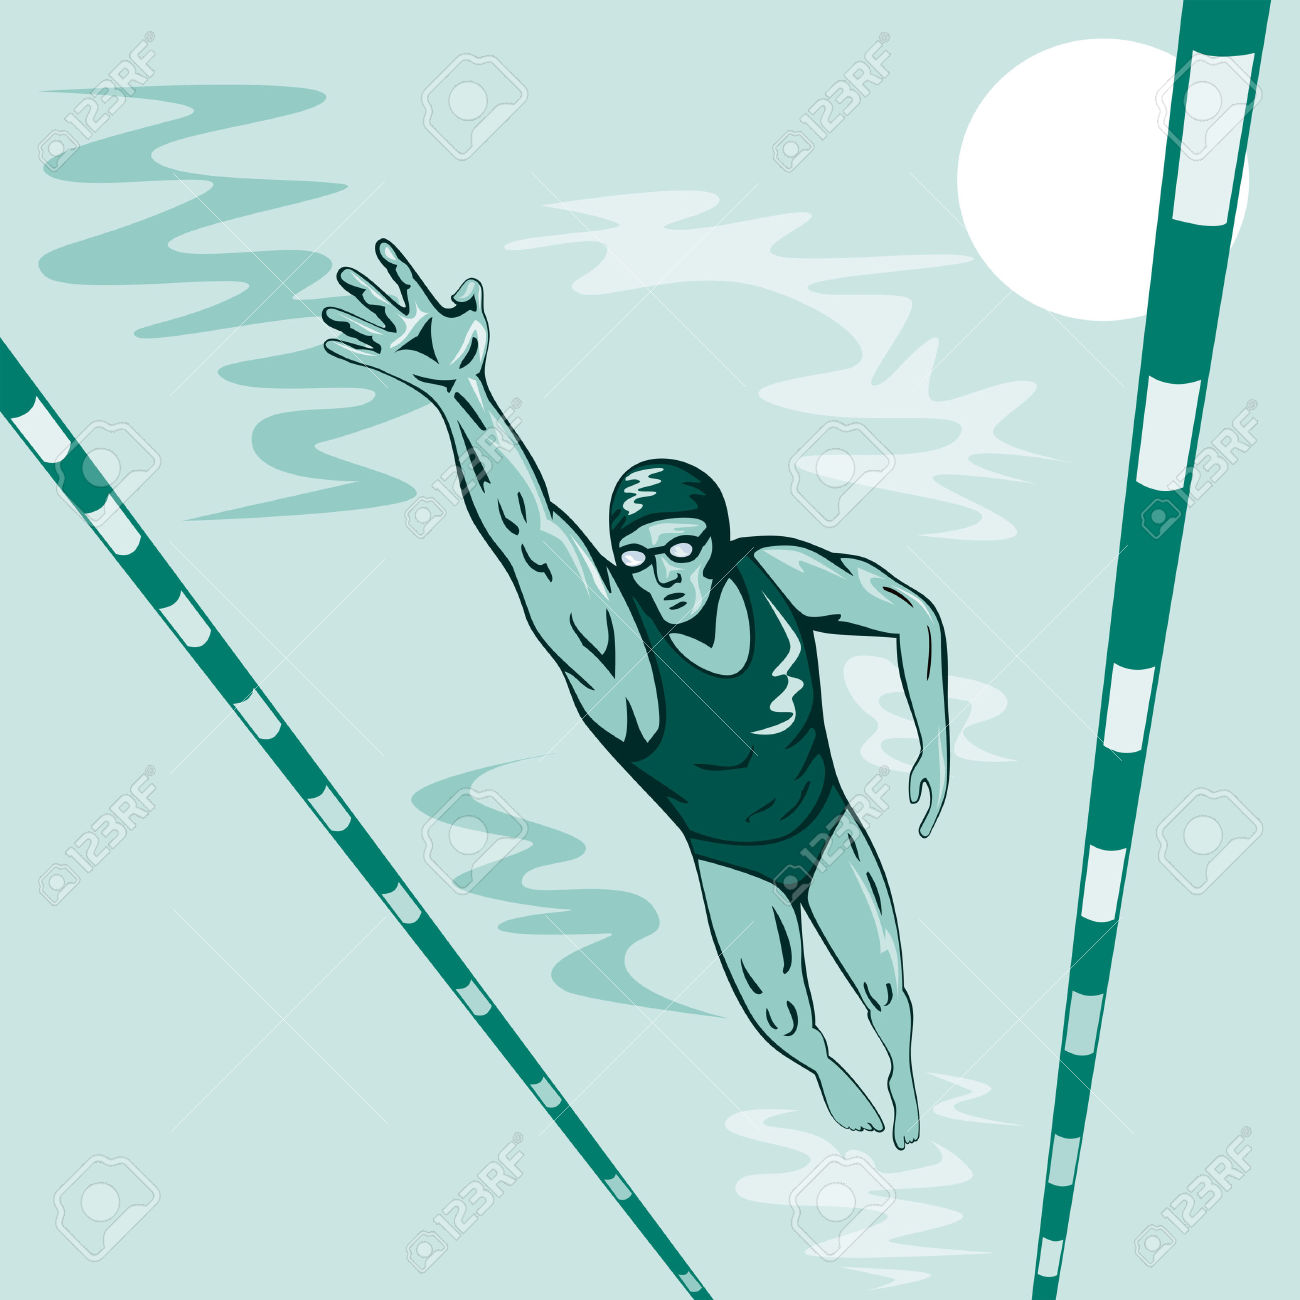 Competitive cliparts zone . Clipart swimming swimming competition